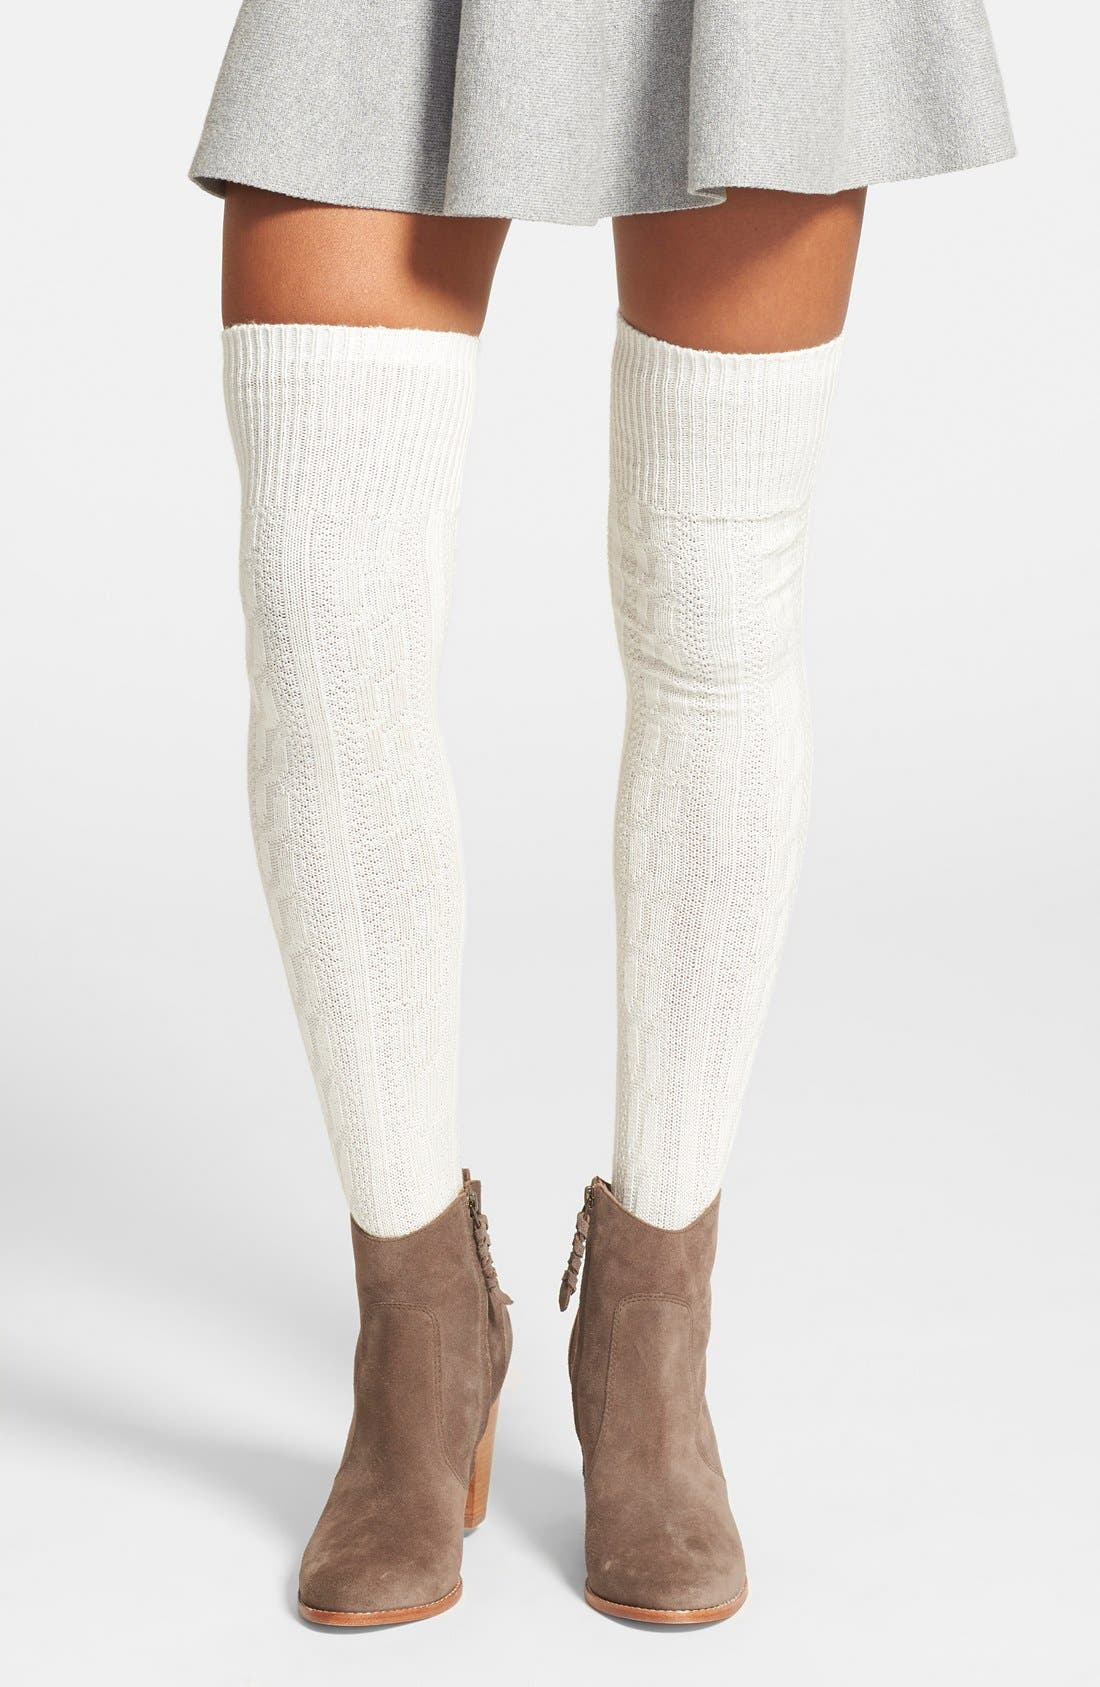 Alternate Image 1 Selected - Hue Chunky Cable Knit Over the Knee Socks